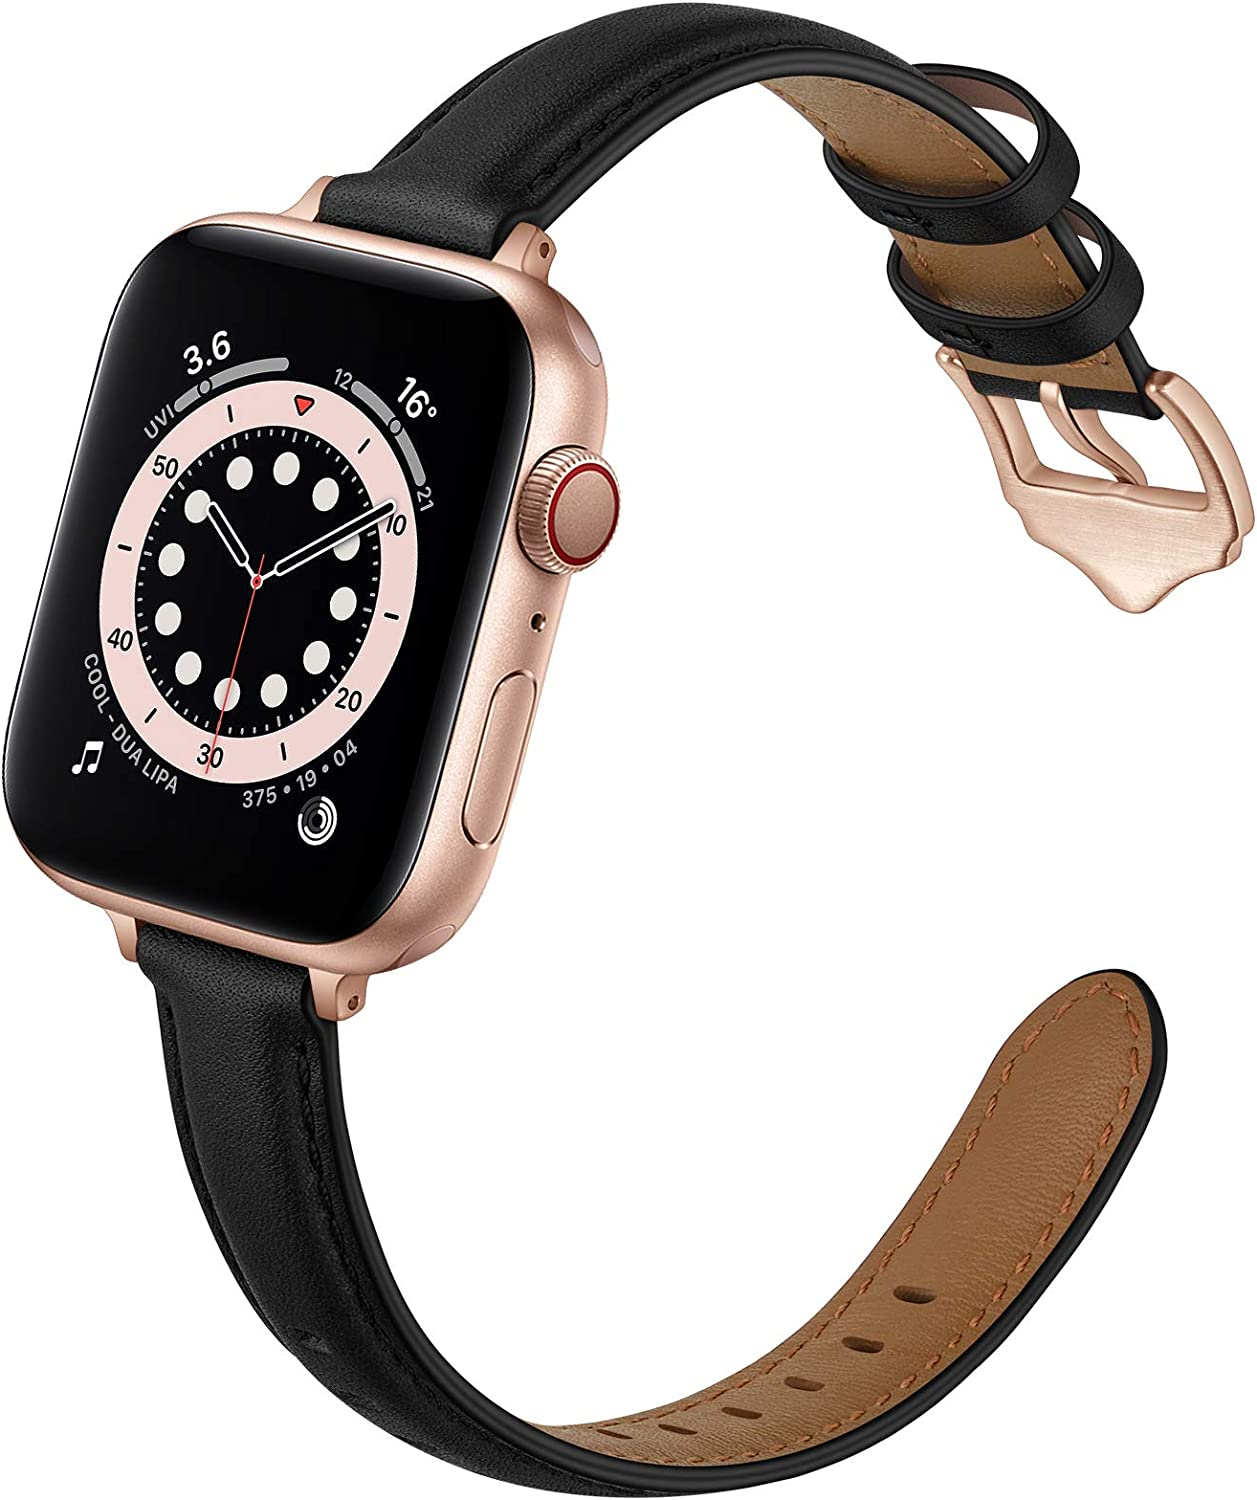 OUHENG Compatible with Apple Watch Bands 40mm 38mm 44mm 42mm, Women Slim Thin Genuine Leather Replacement Strap for iWatch SE Series 6 5 4 3 2 1 (Black/Rose Gold, 40mm 38mm)